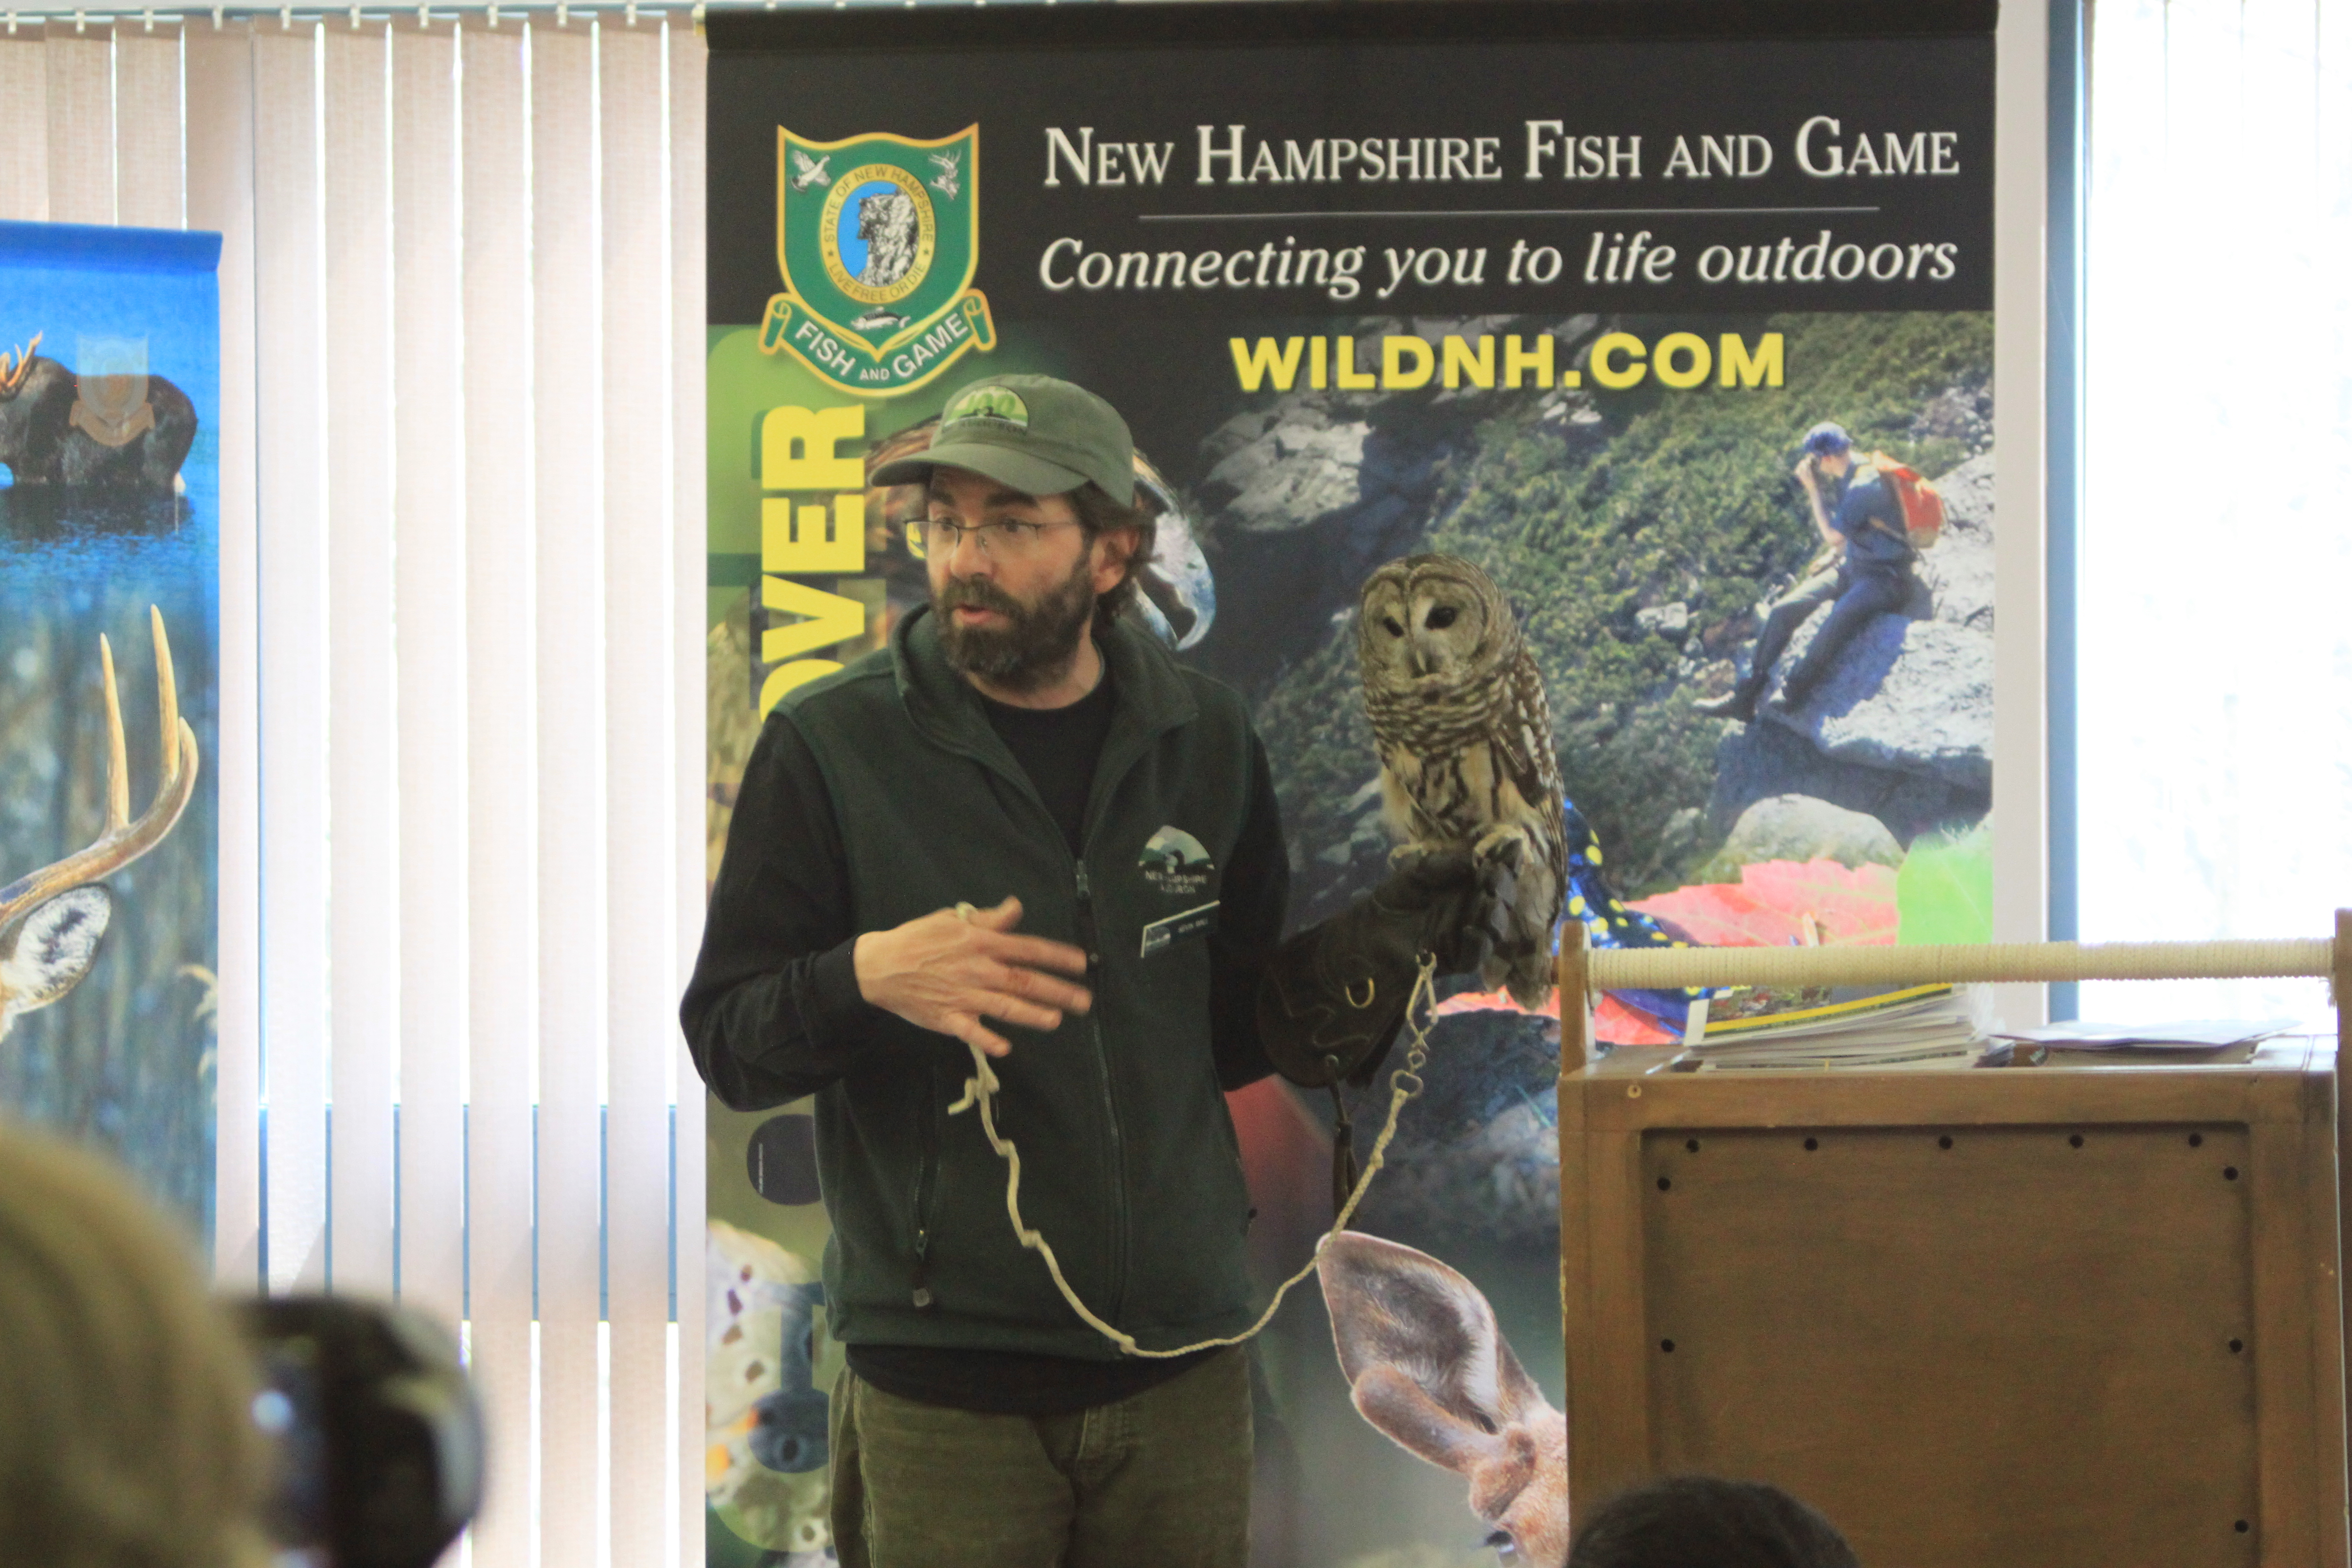 Discover wild new hampshire day photo gallery events for Nh fish game